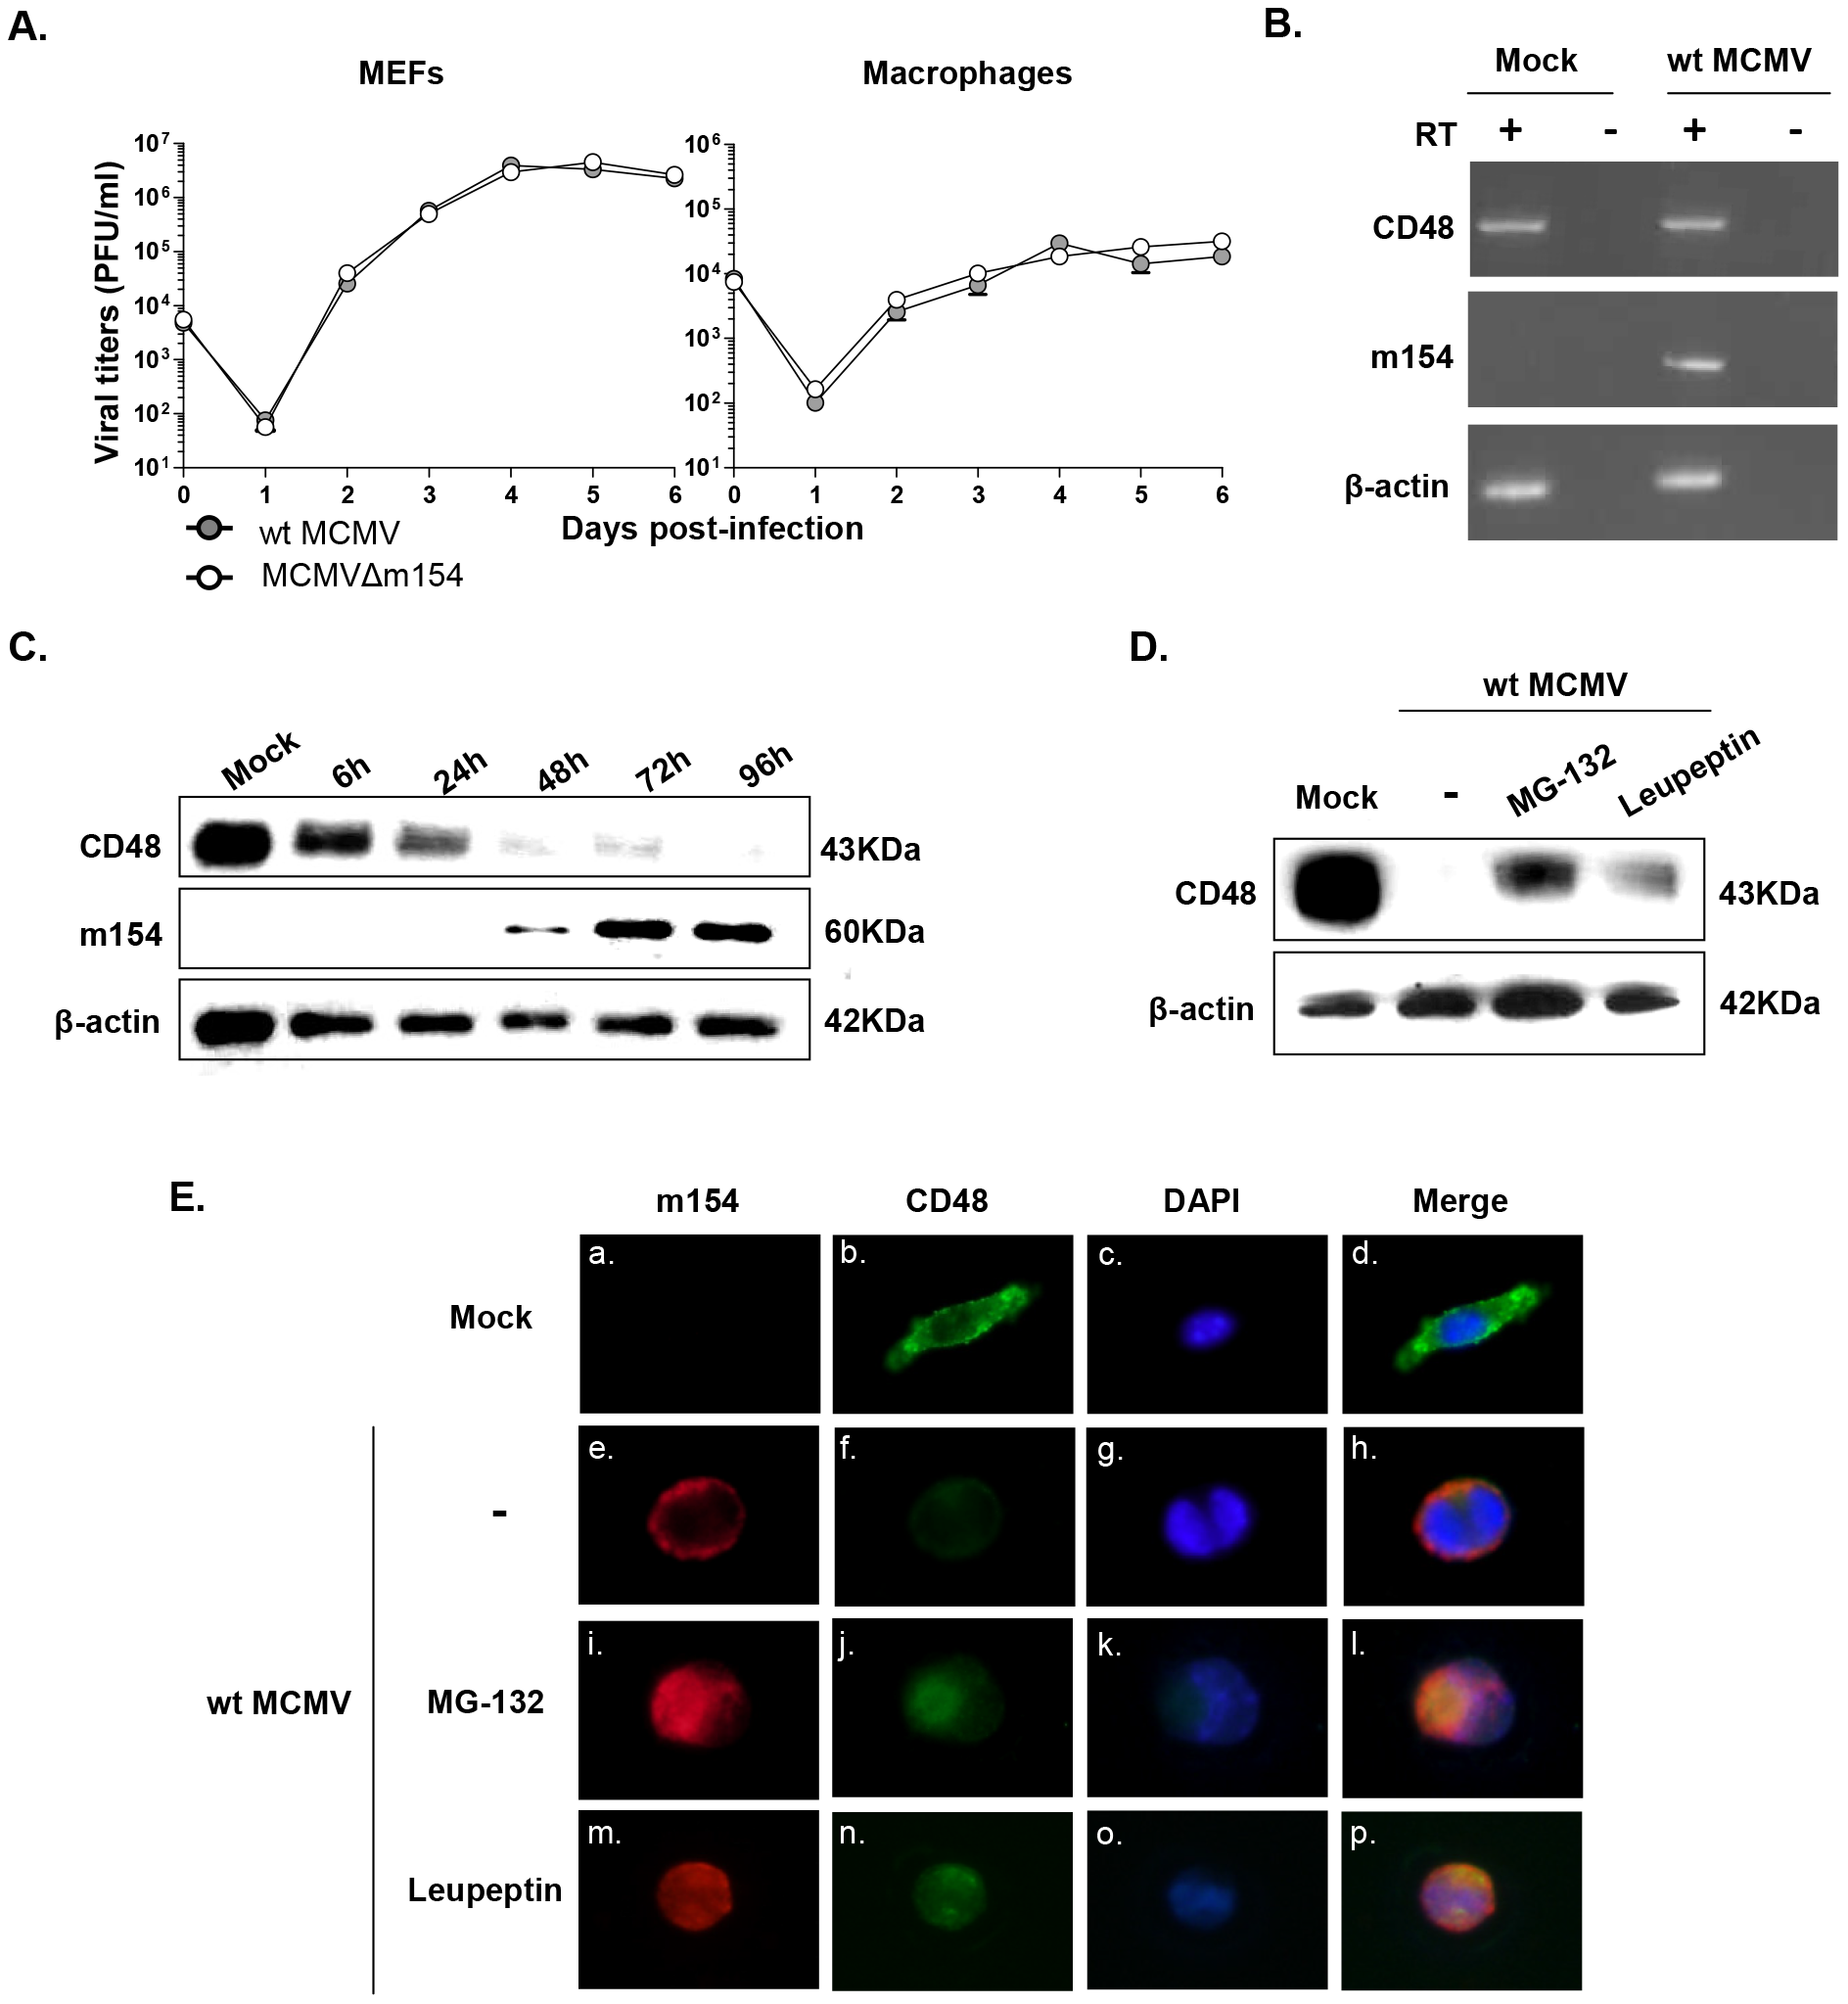 CD48 undergoes proteolytic degradation during MCMV infection.